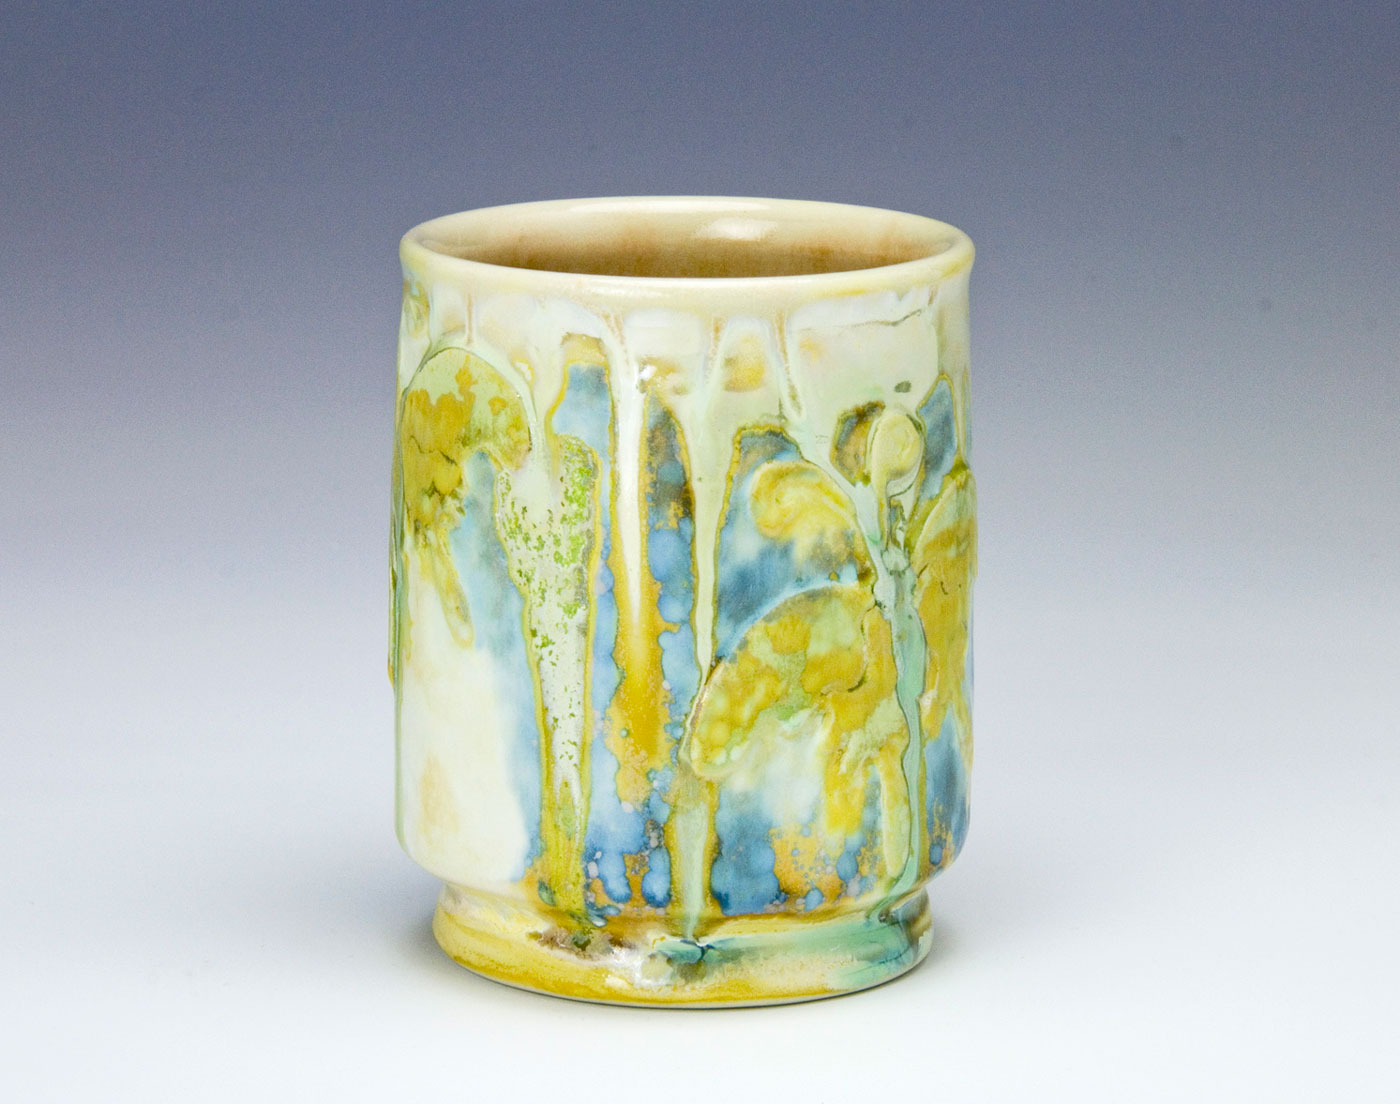 Butterfly-cup-crystalline-glaze-Samantha-Henneke-Seagrove-Pottery.jpg